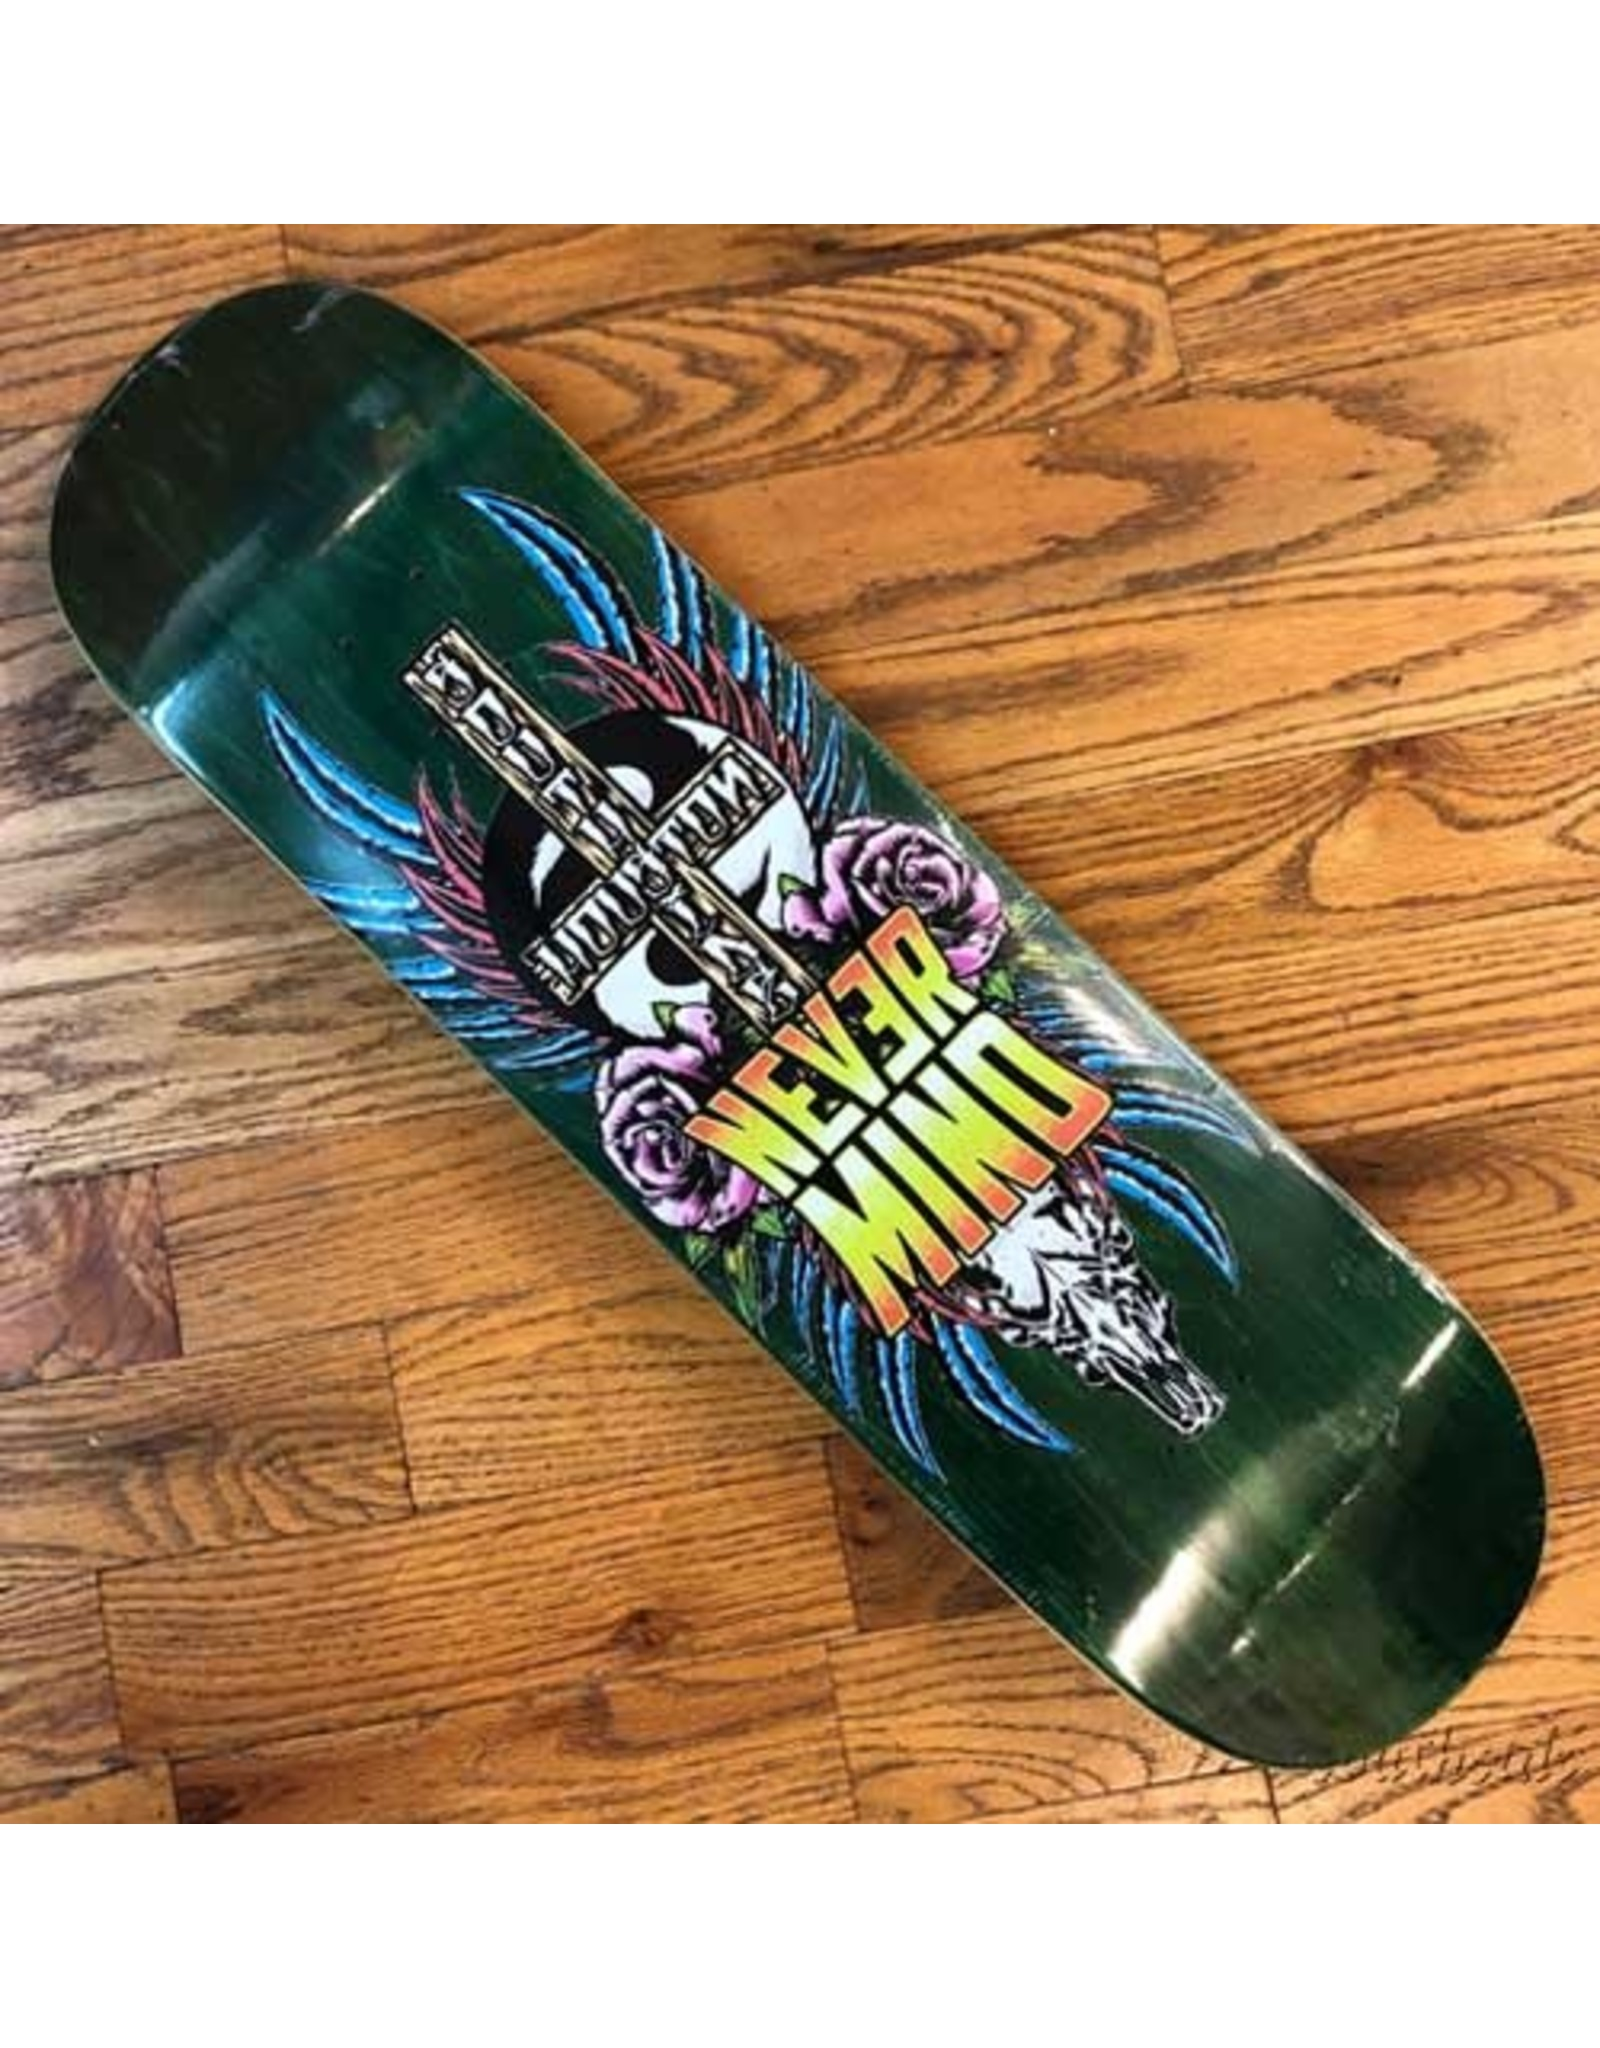 Southside Southside Nevermind Skateboards Deck 8.38x31.75 Pink Flowers Various Stained Veneer BOX Shape